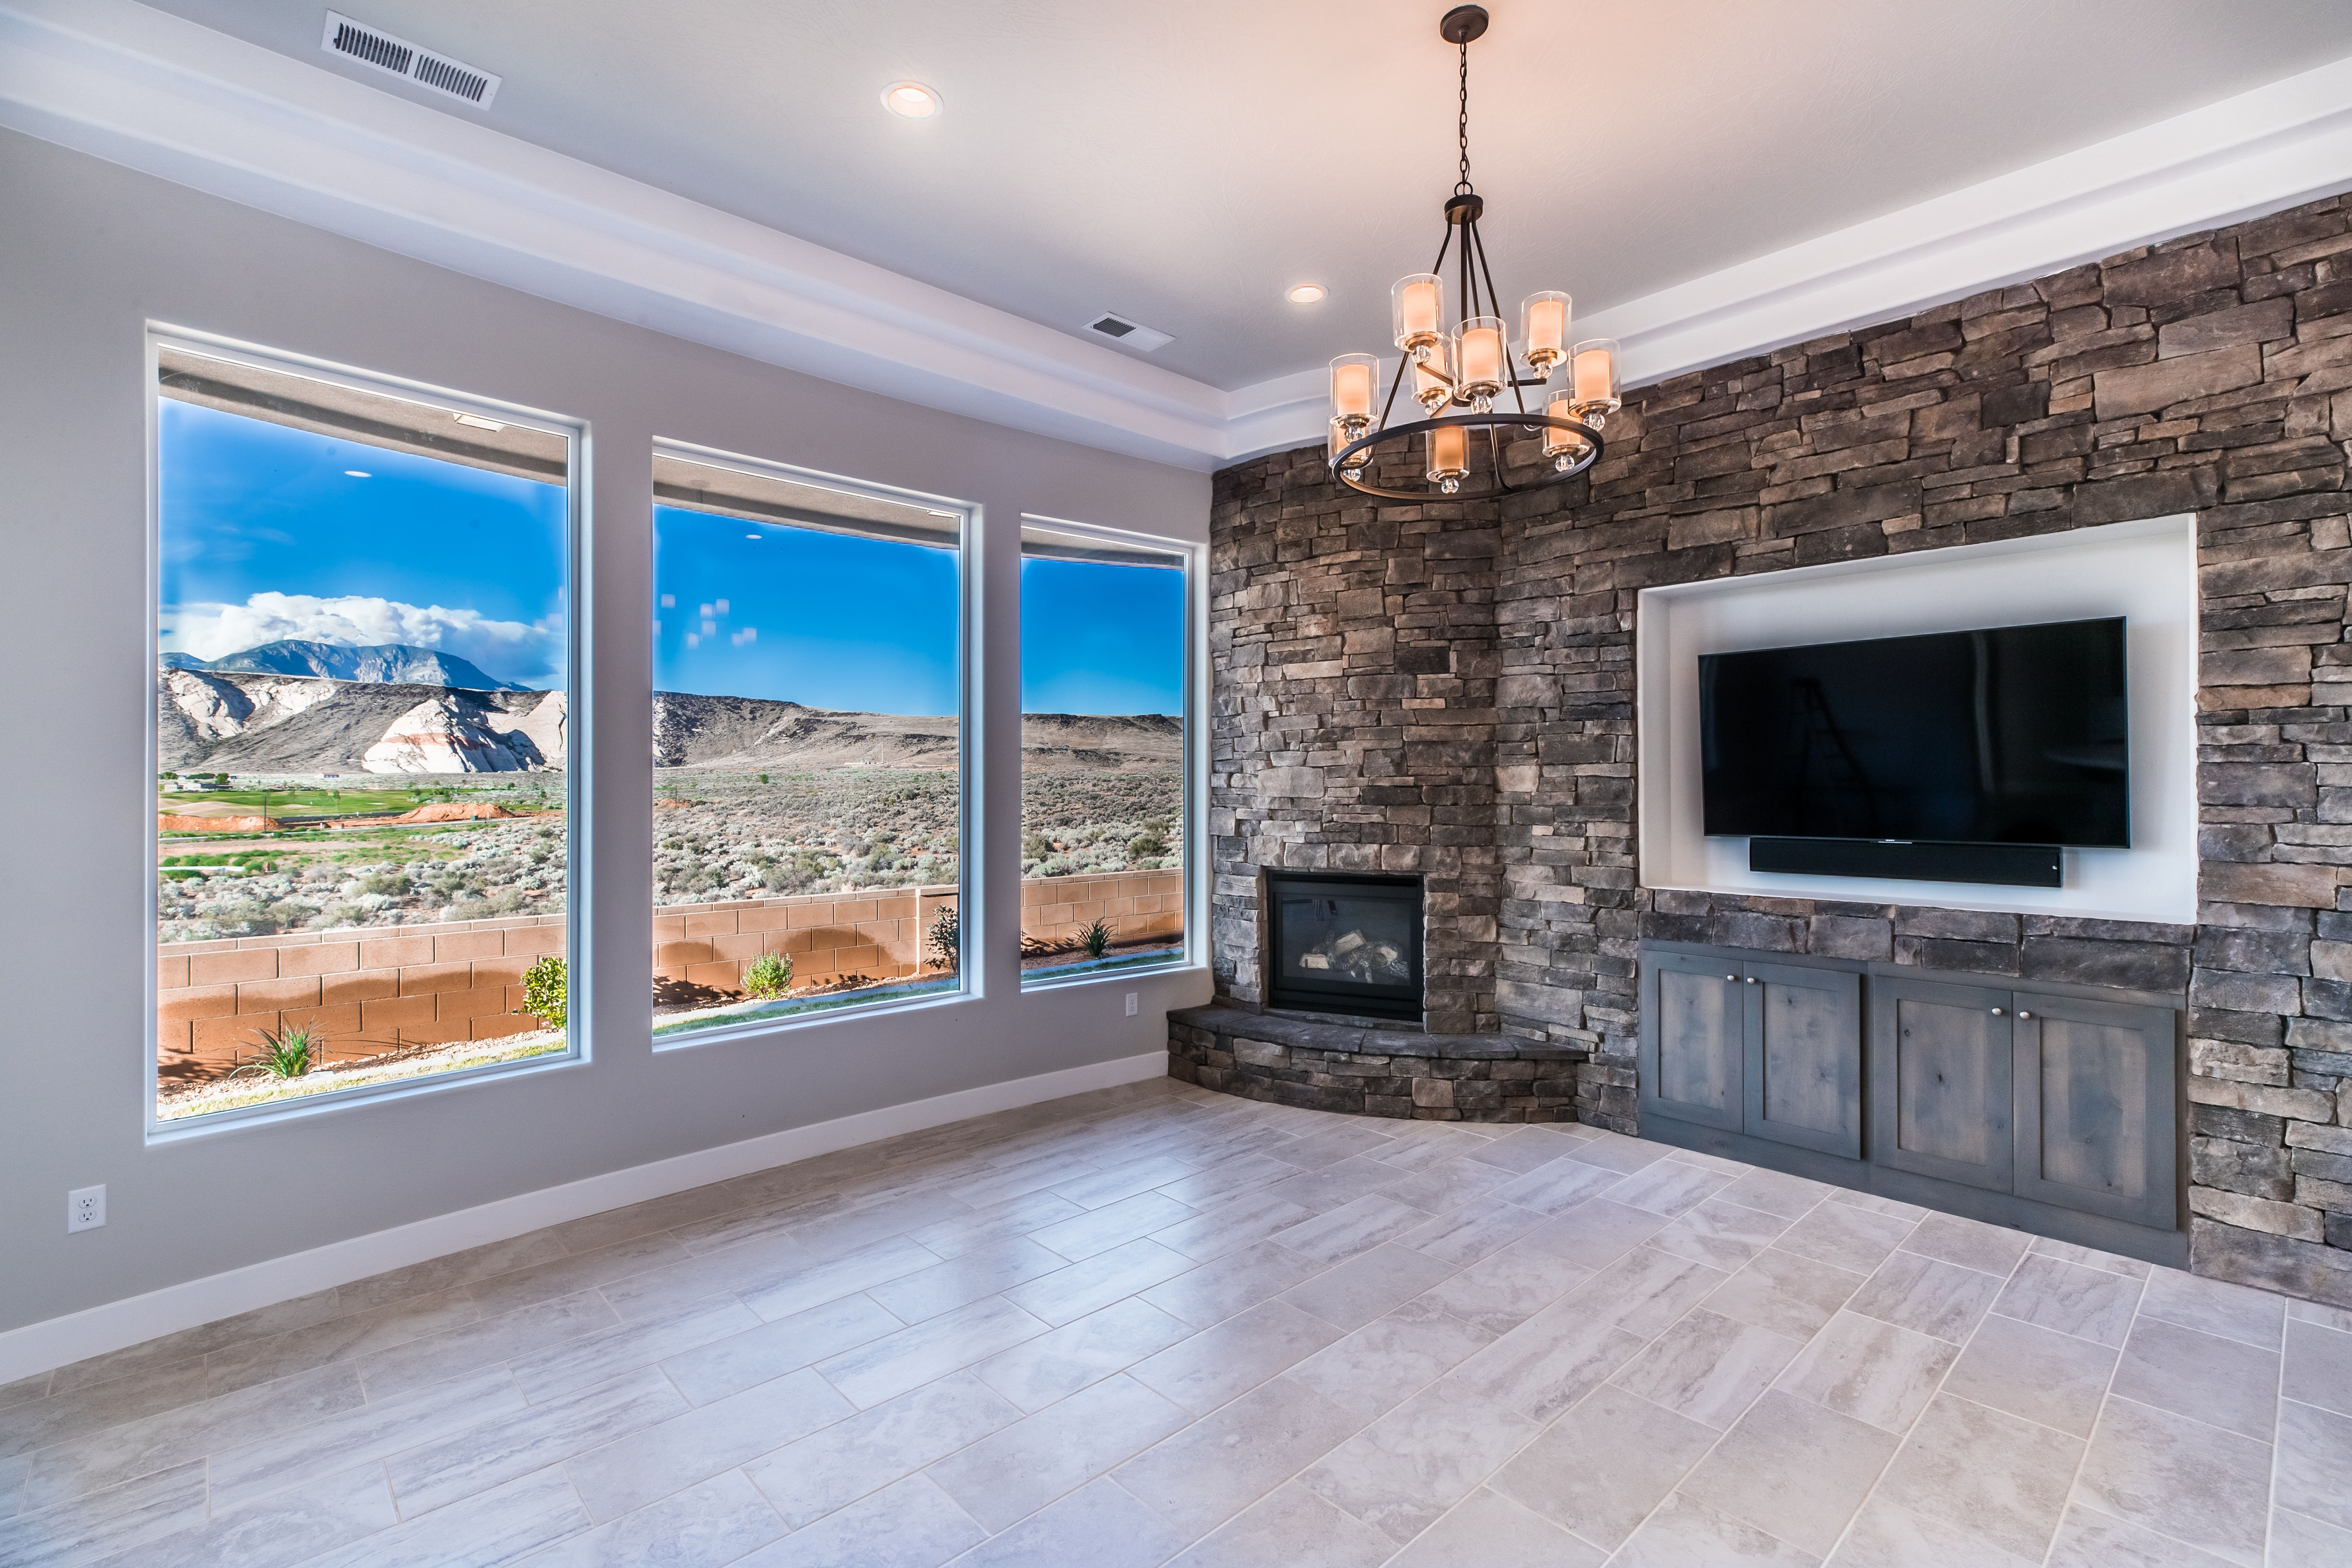 Fireplace And Entertainment Center With A View For More